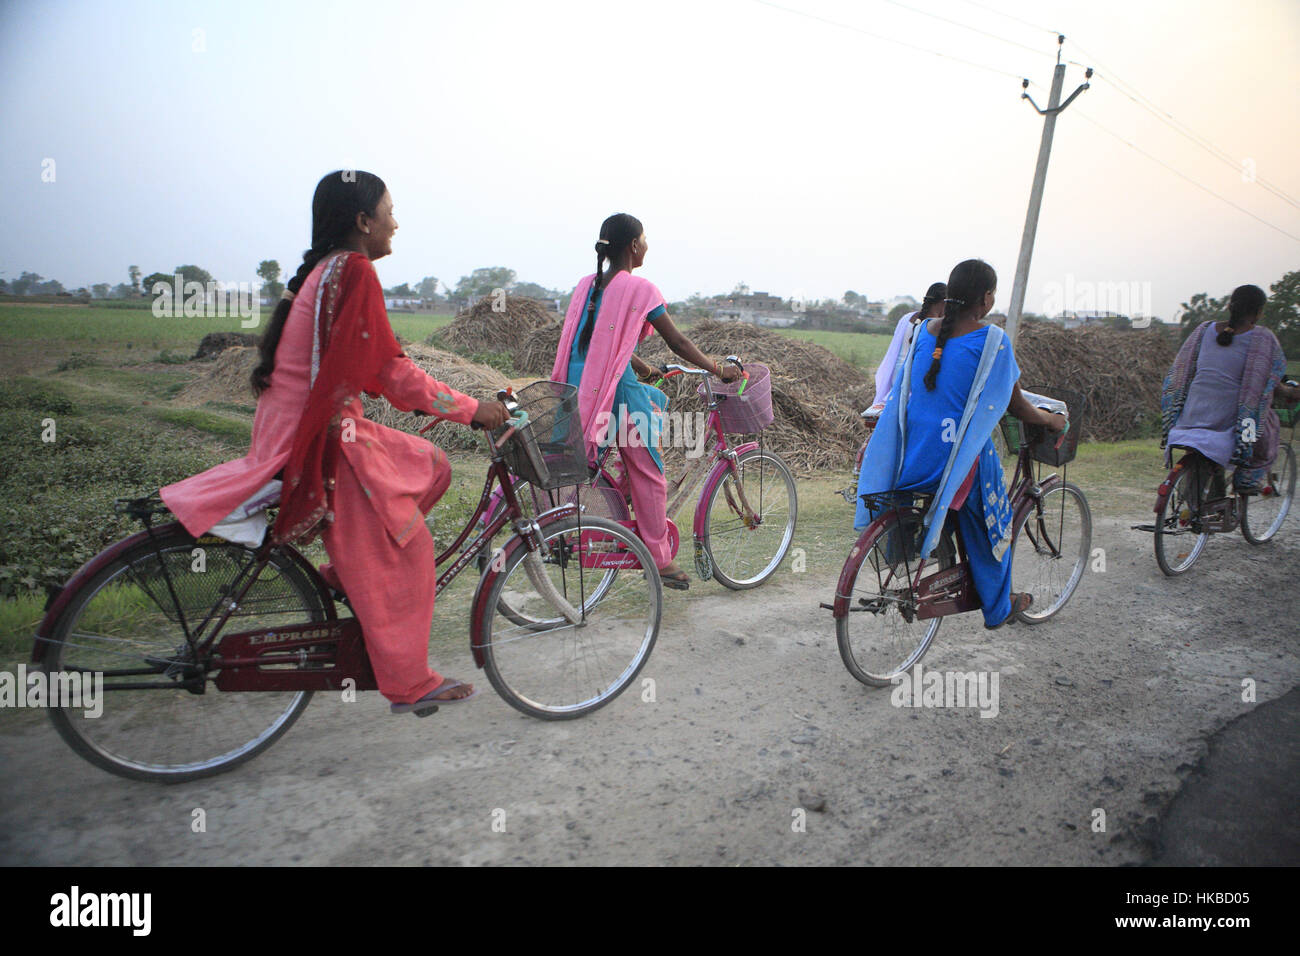 Patna, Bihar, India. 28th Apr, 2010. 28 April 2010 - Patna - INDIA.Girls ride bicycle as they return from School.Traditionally - Stock Image